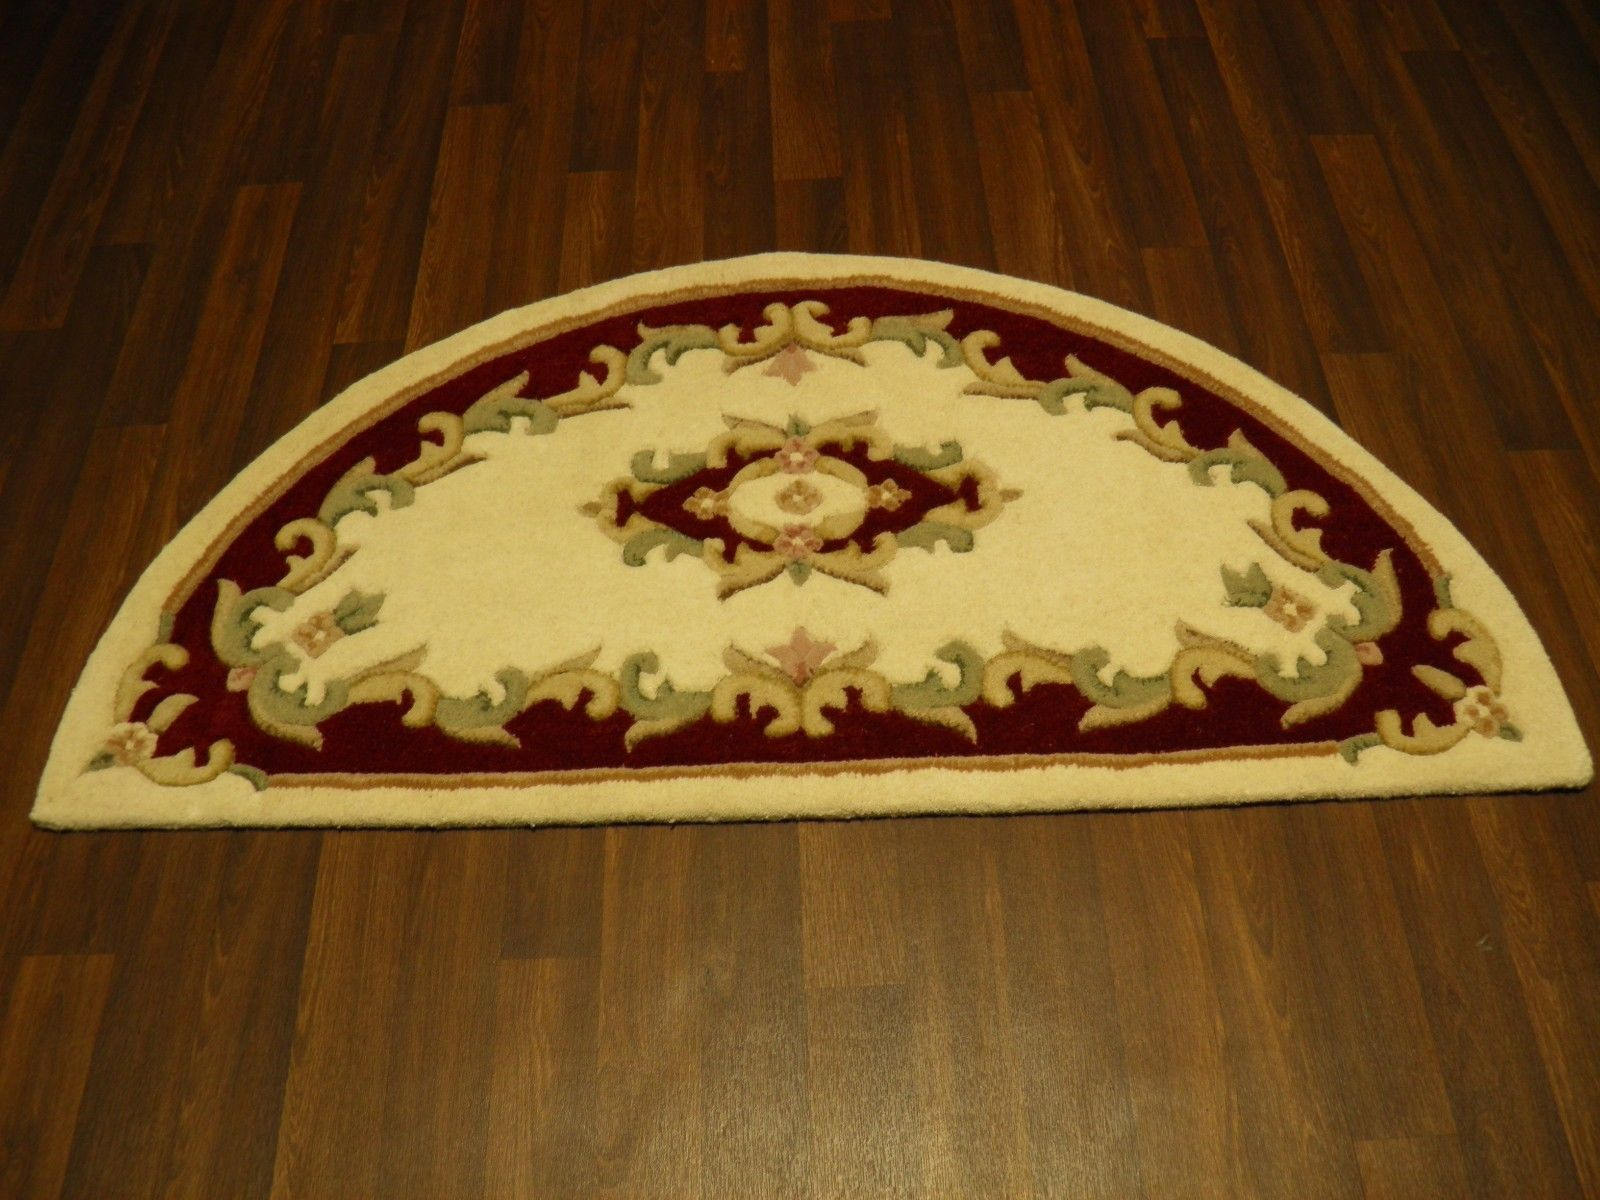 Half Moon 100 Wool Rugs New Super Thick Pile 67cmx137cm Cream Red Lovley Rugs